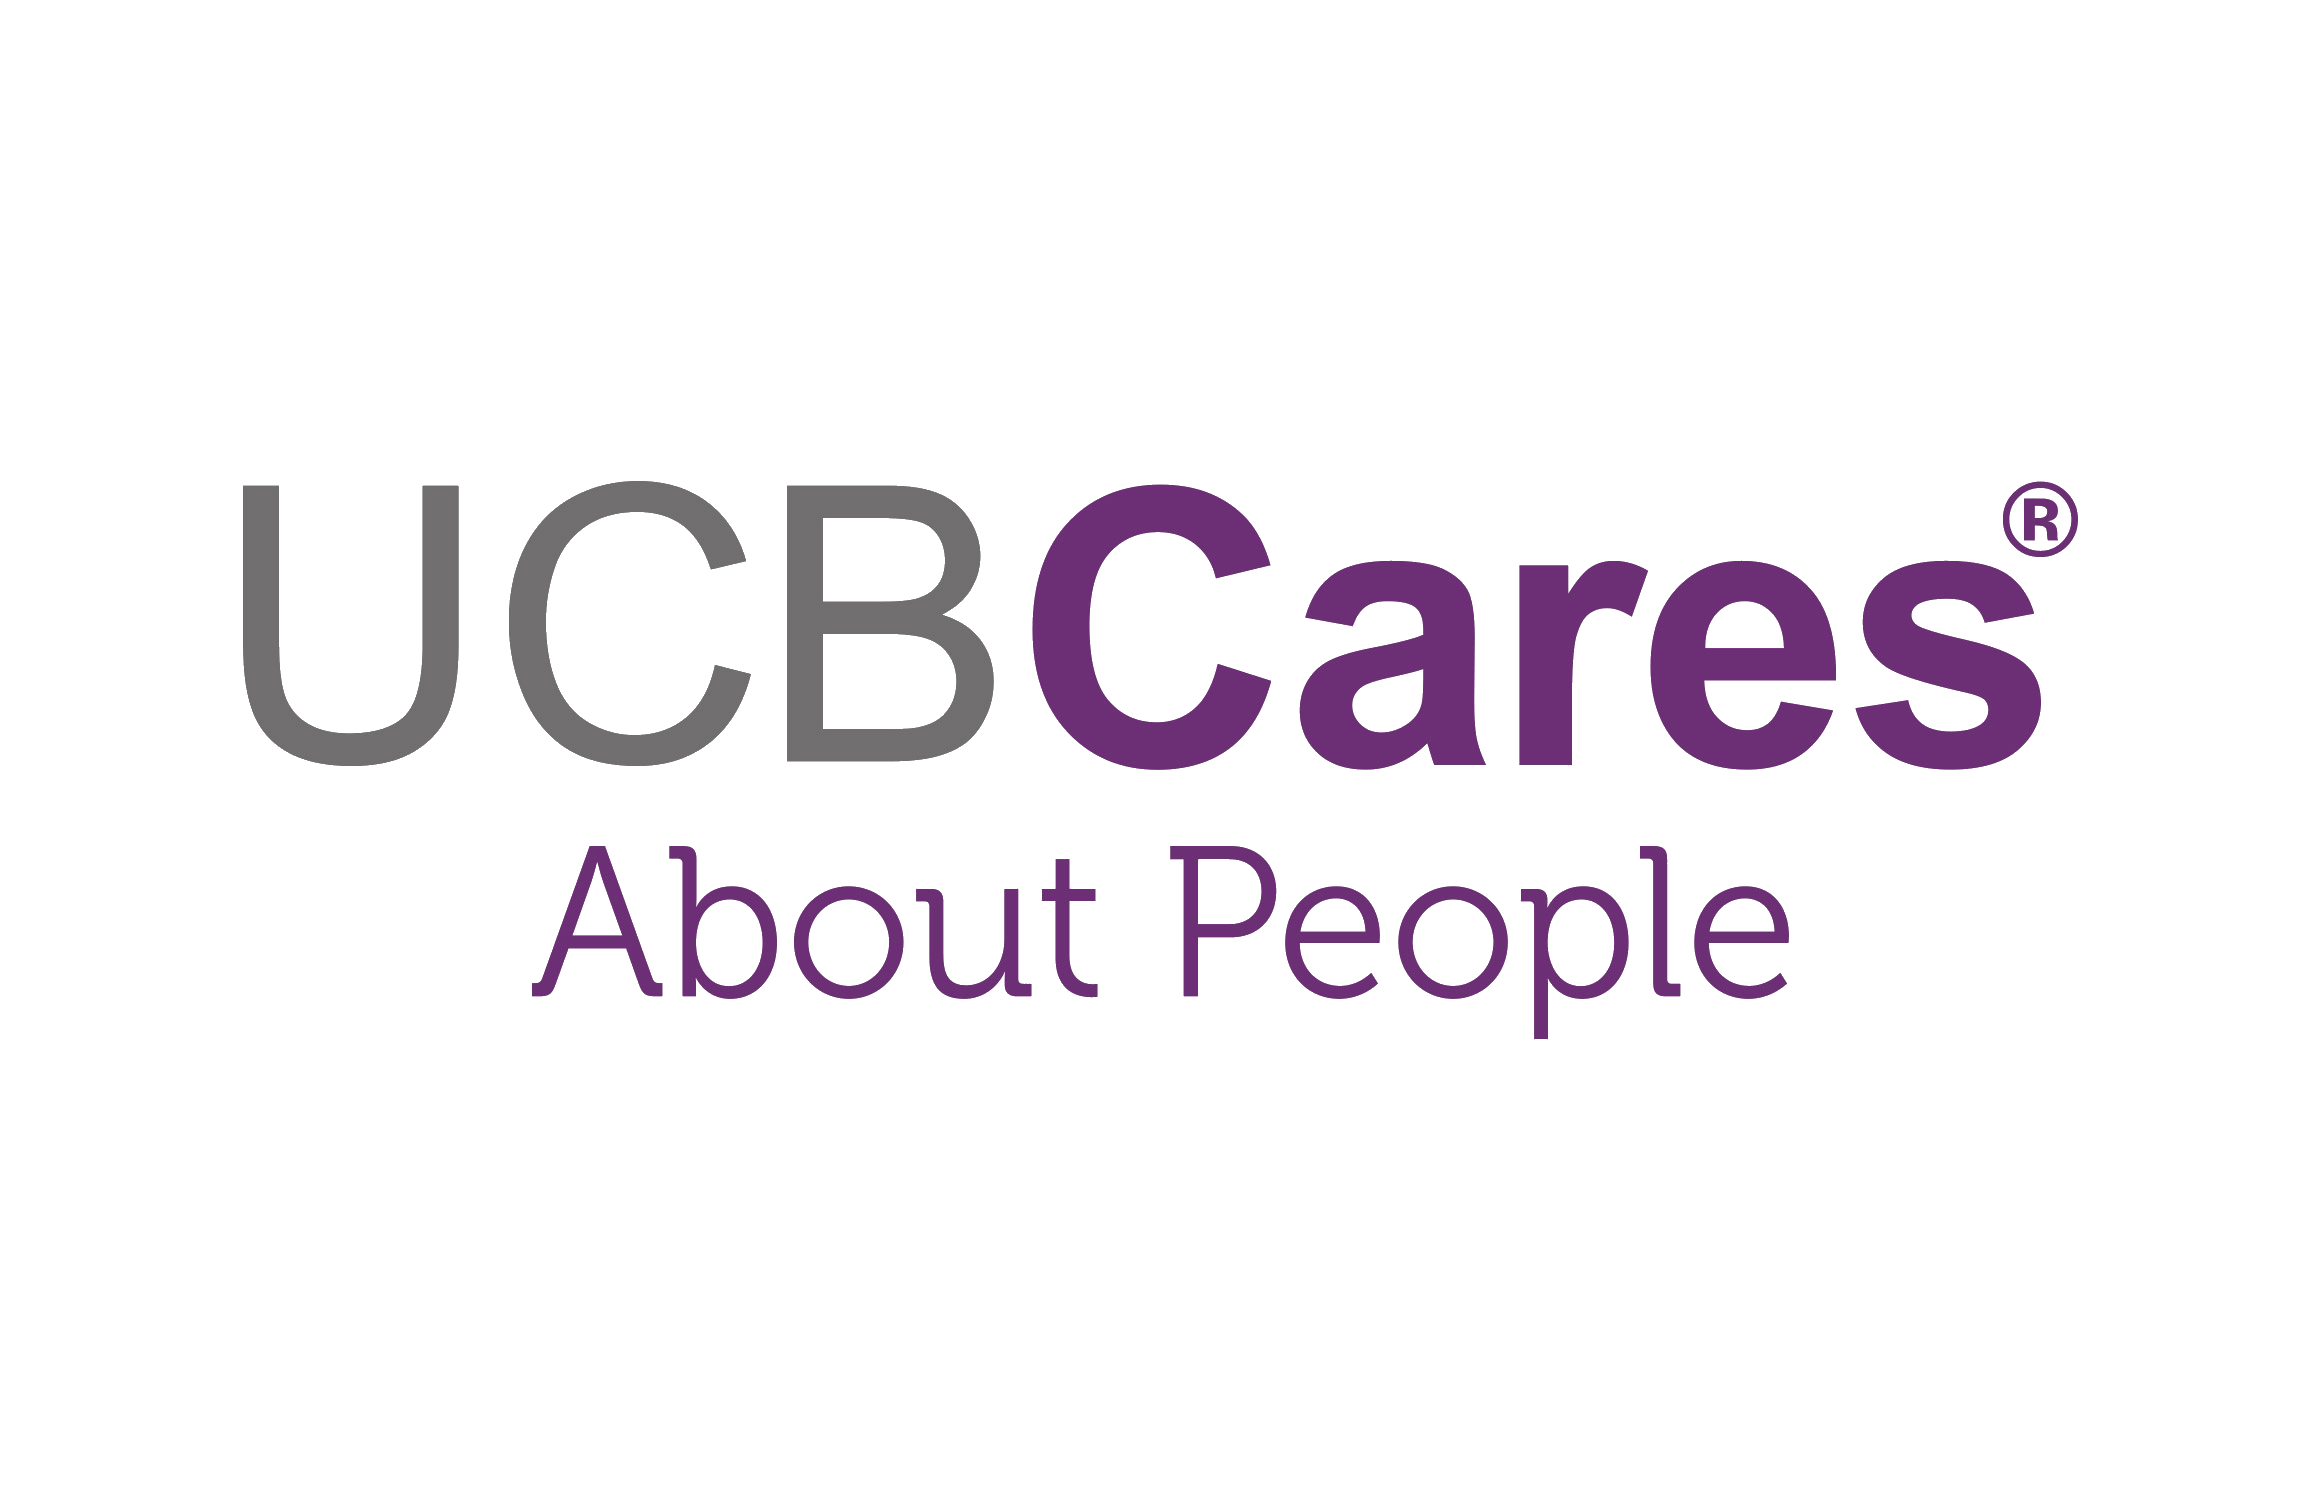 logo-ucbcares-about-people